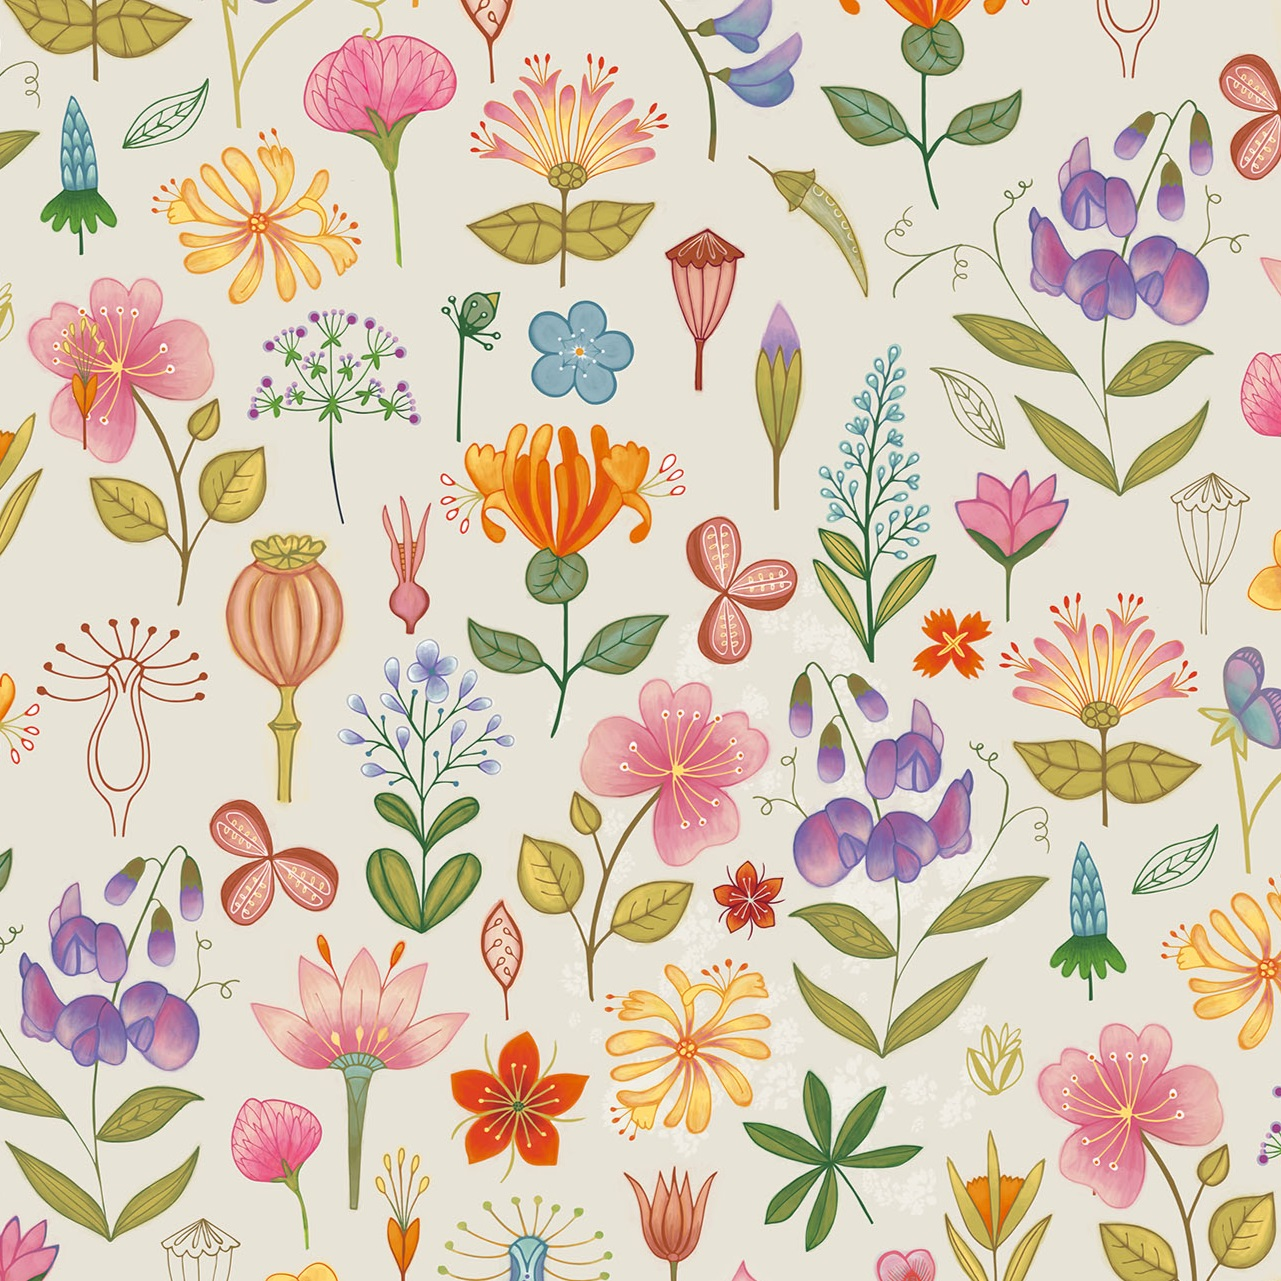 HM_18014_Botanical pattern.jpg